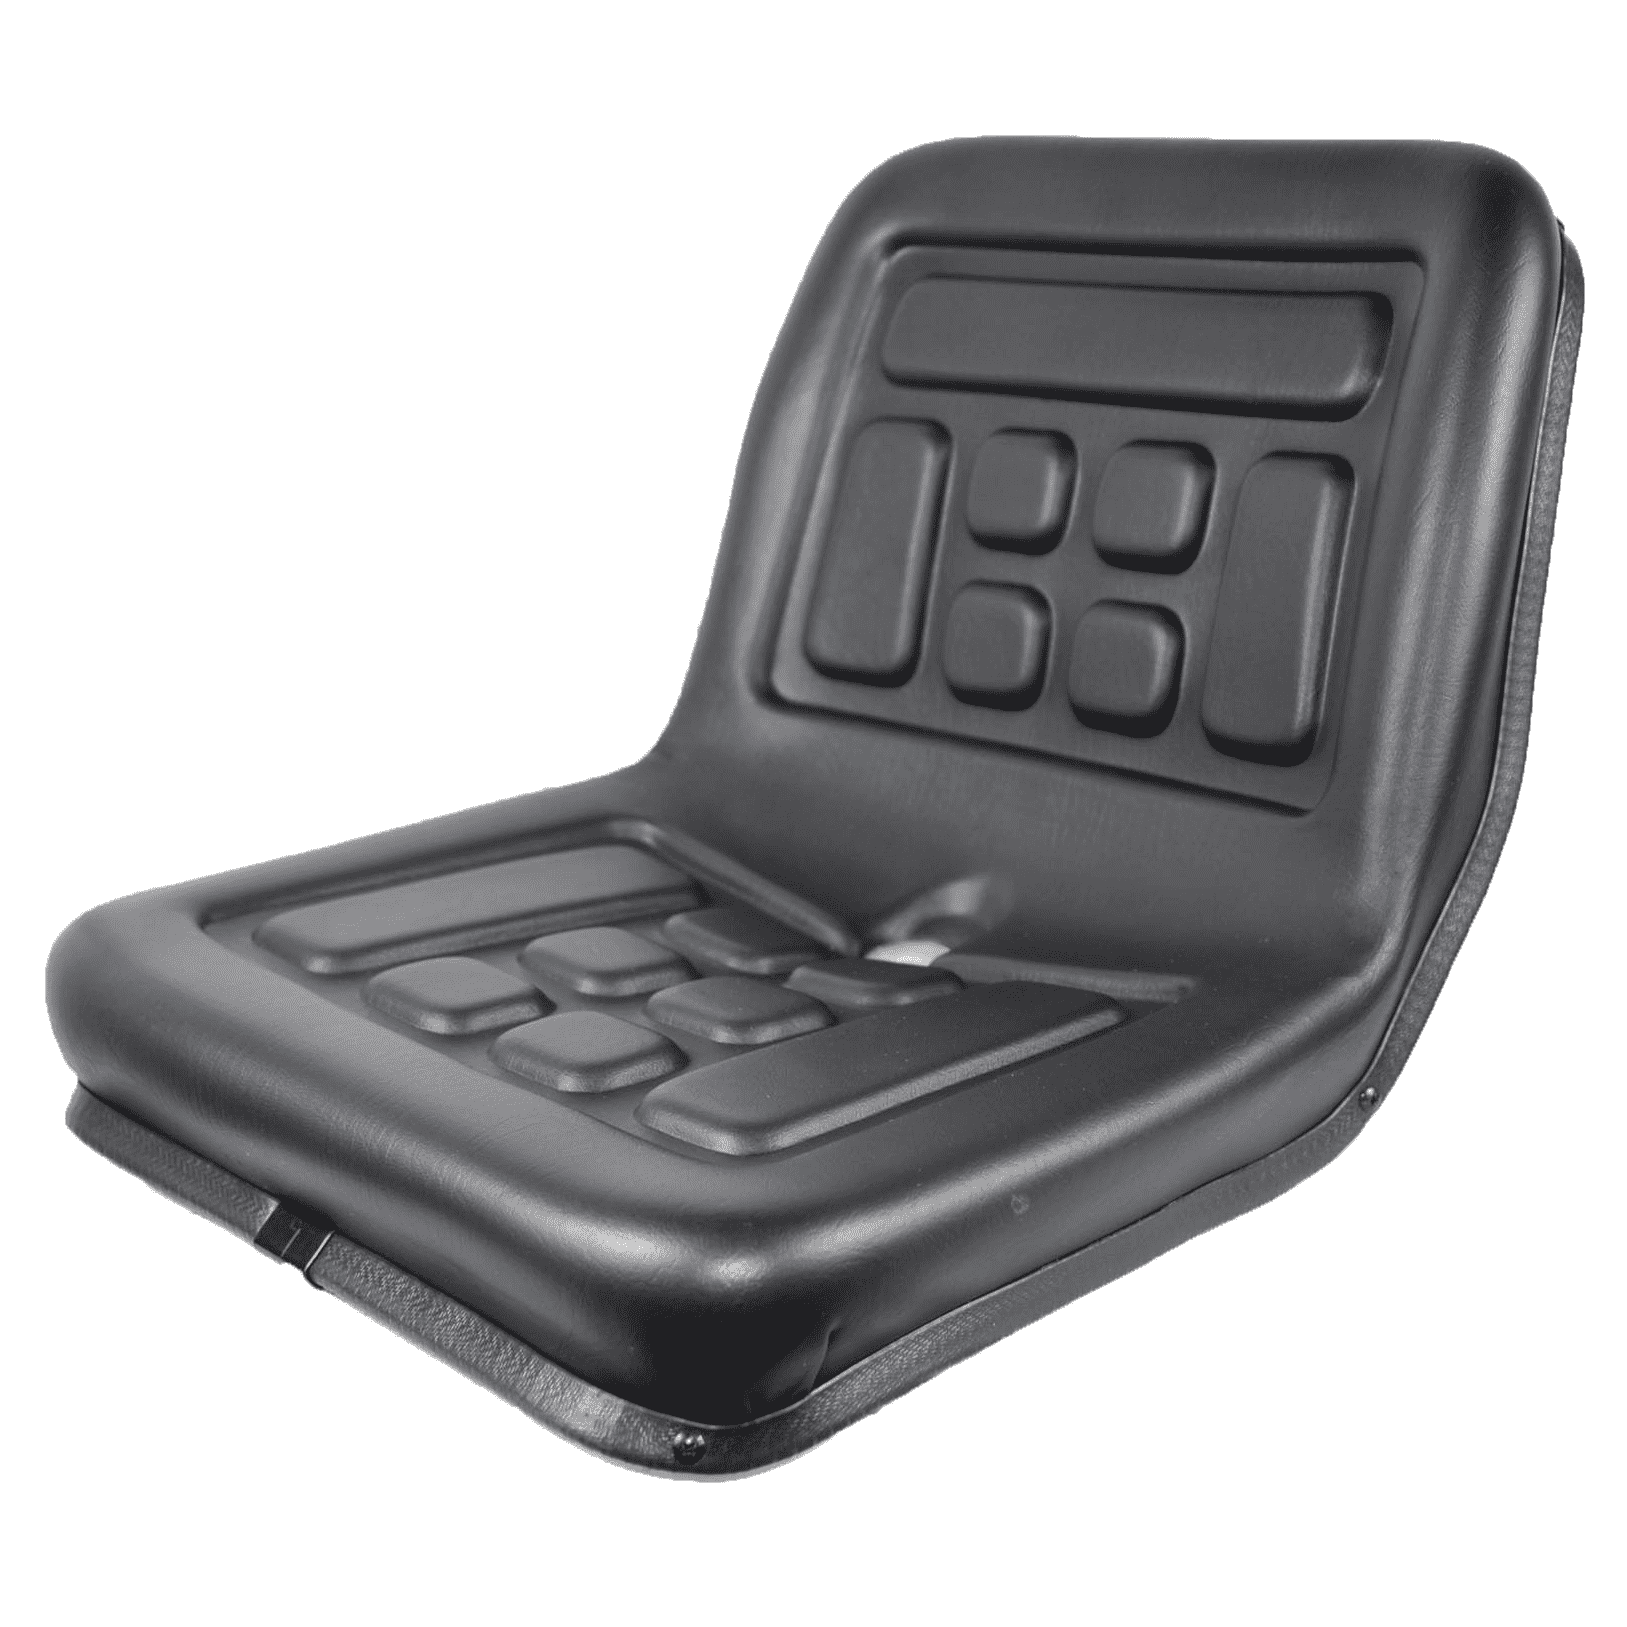 YY11 Compact Tractor Seat with Flip-Type Brackets Featured Image